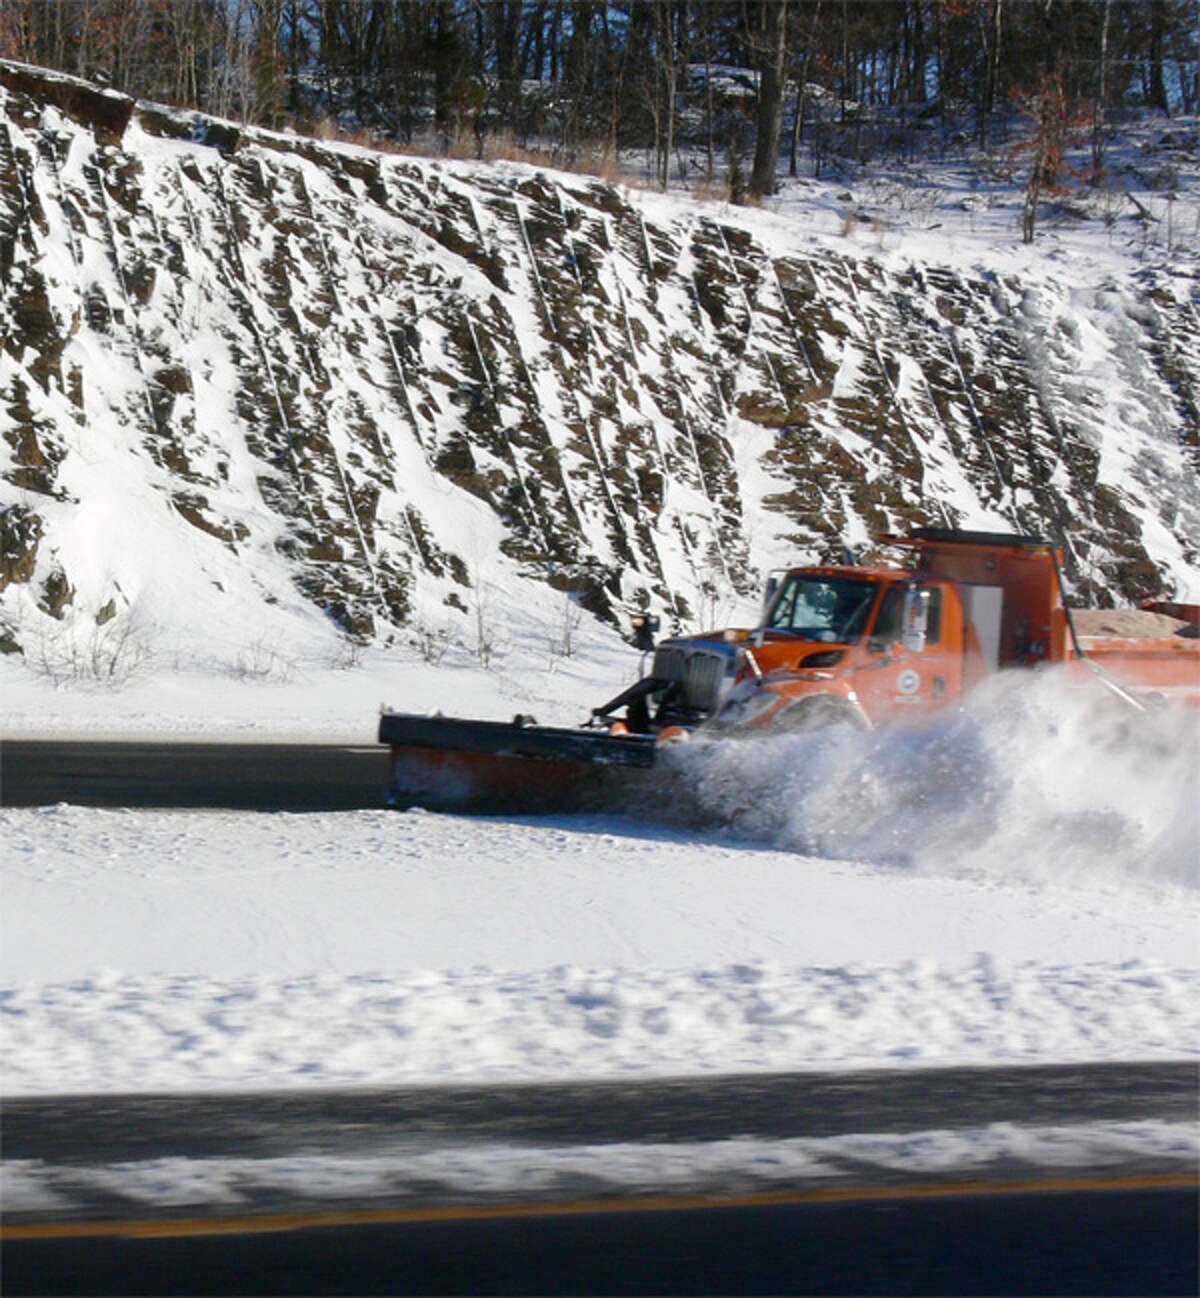 A state DOT plow clears snow from Route 8 northbound in Shelton, just north of the Old Stratford Road exit.